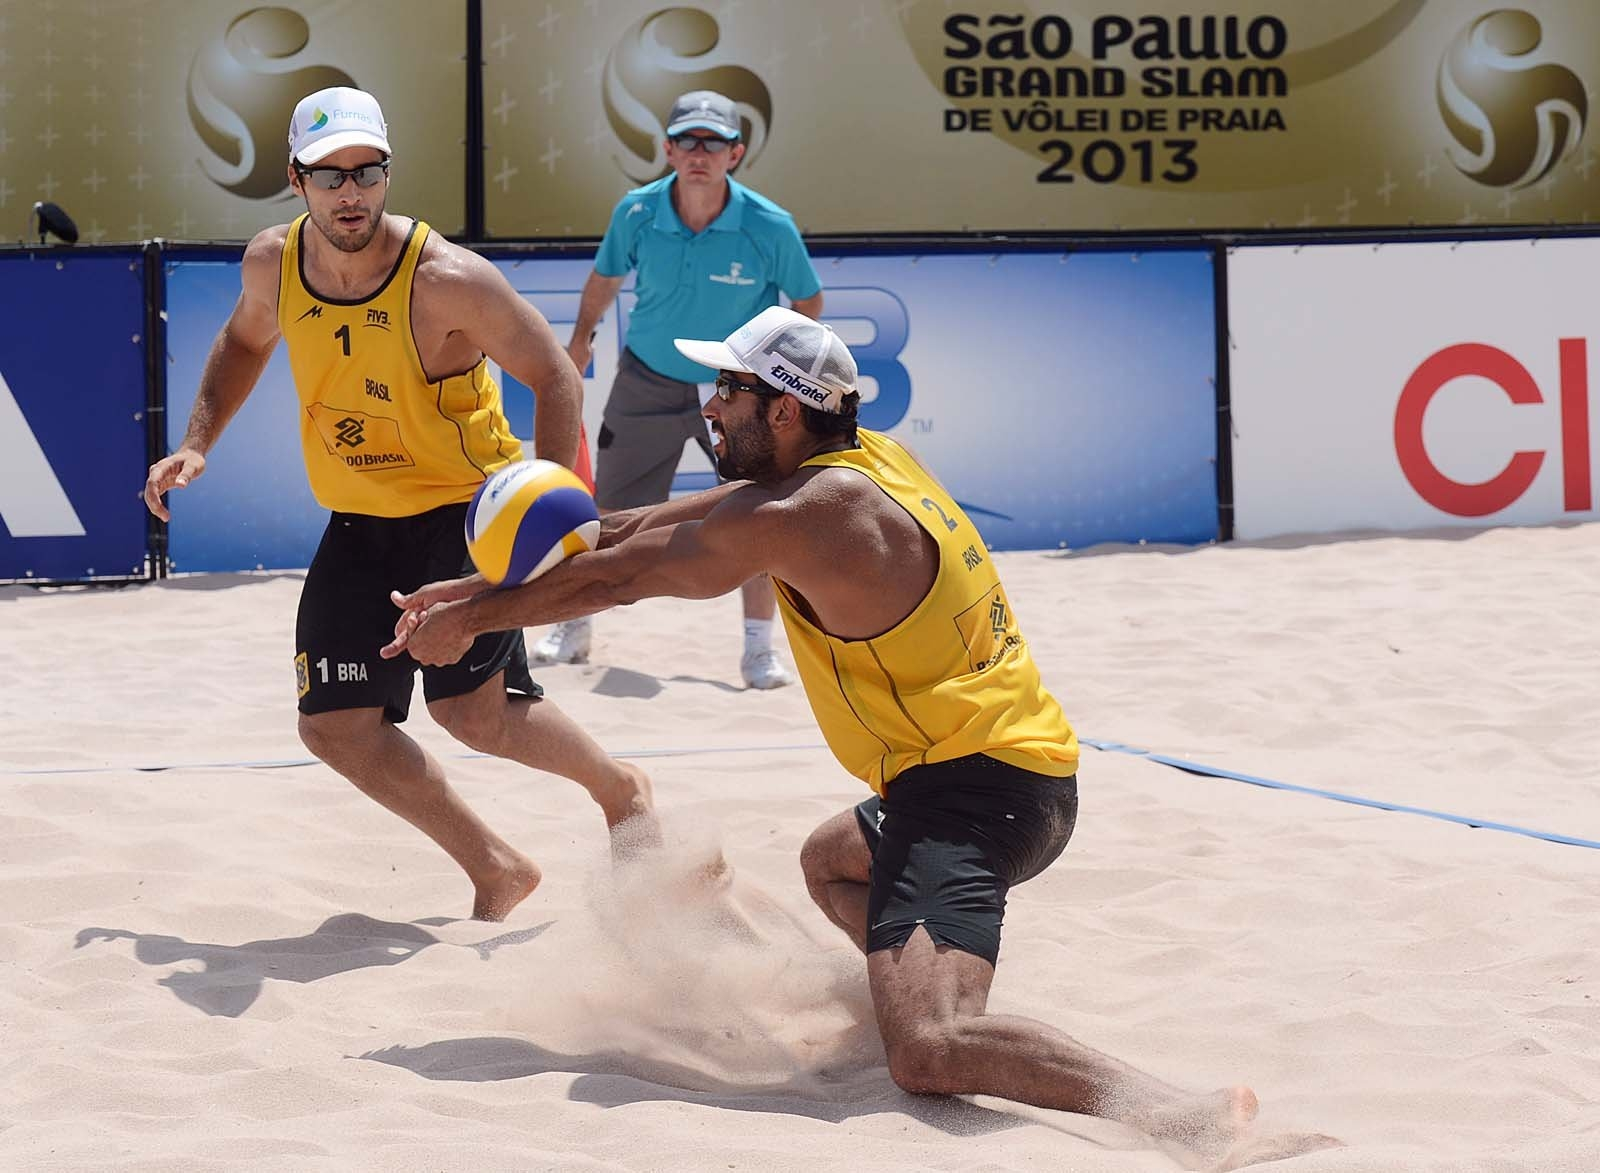 Pedro and Bruno have played together between 2012 and 2013 (Photocredit: FIVB)